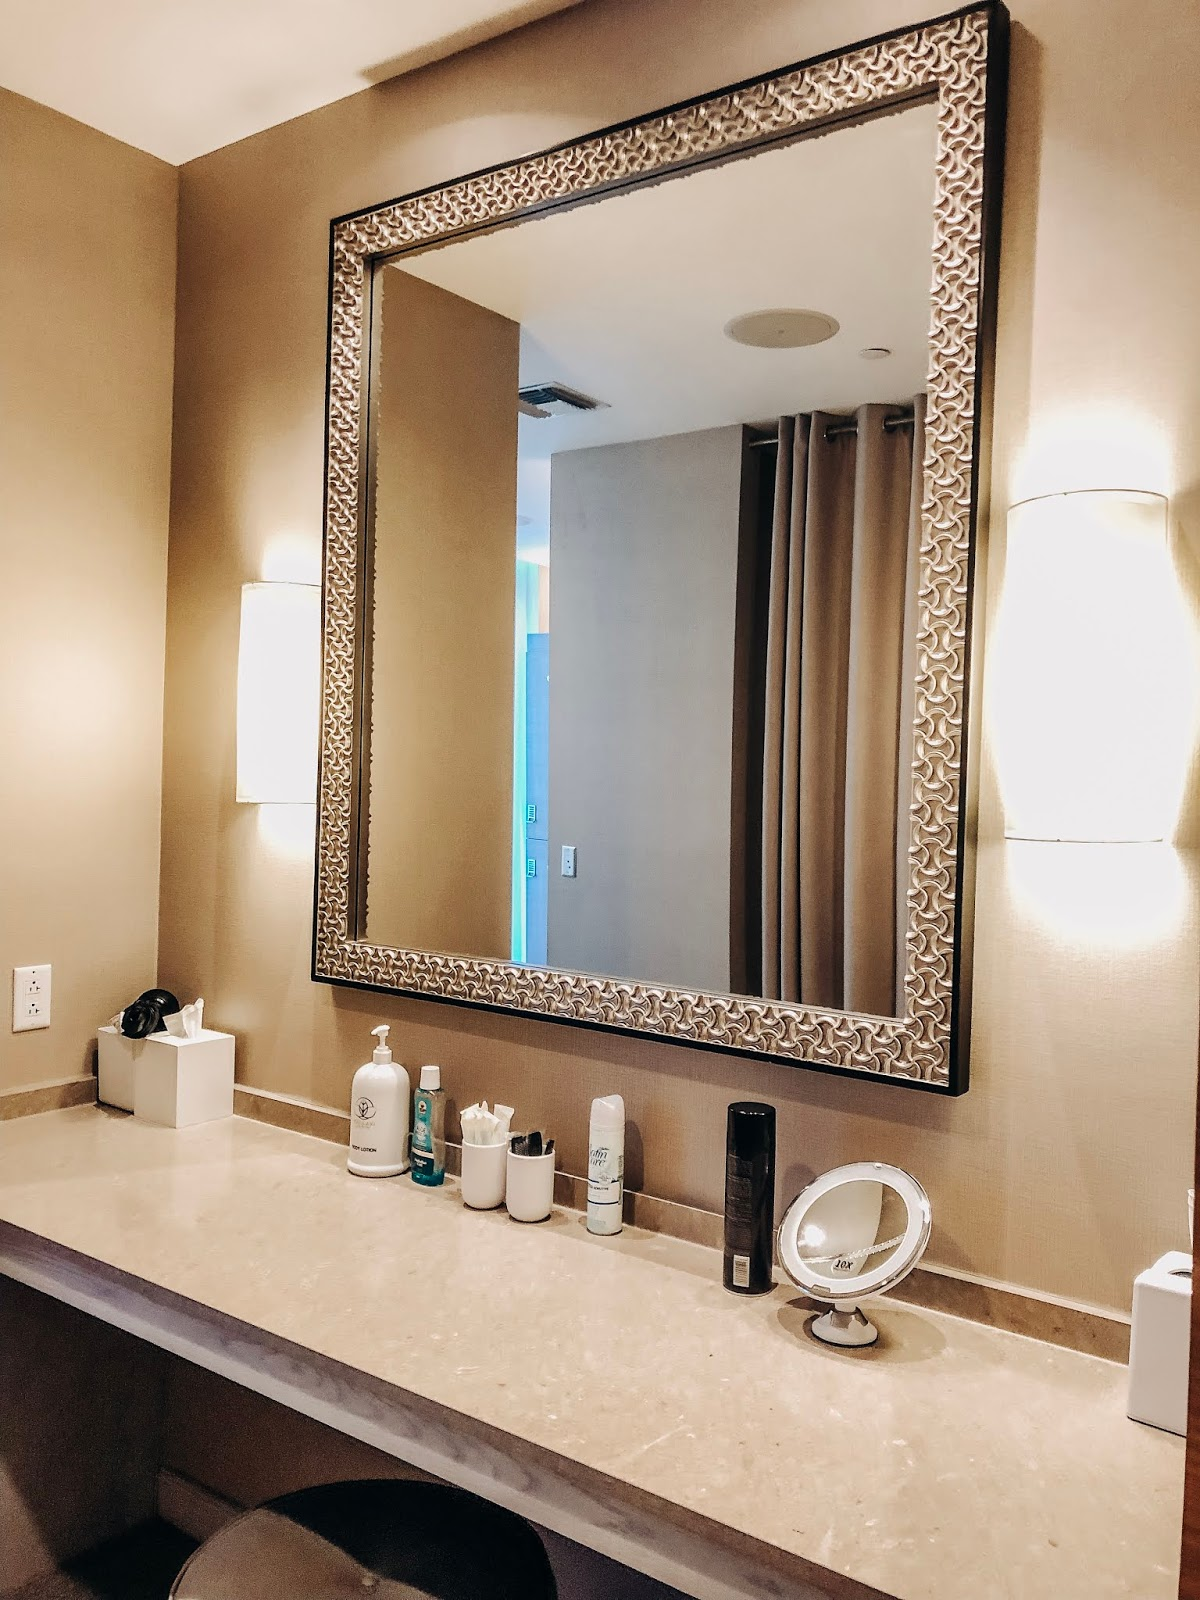 inside the pallavi luxury spa. wyndham grand clearwater beach resort in clearwater,florida. affordable by amanda tampa blogger spends time with her mother at the spa for a girls day.